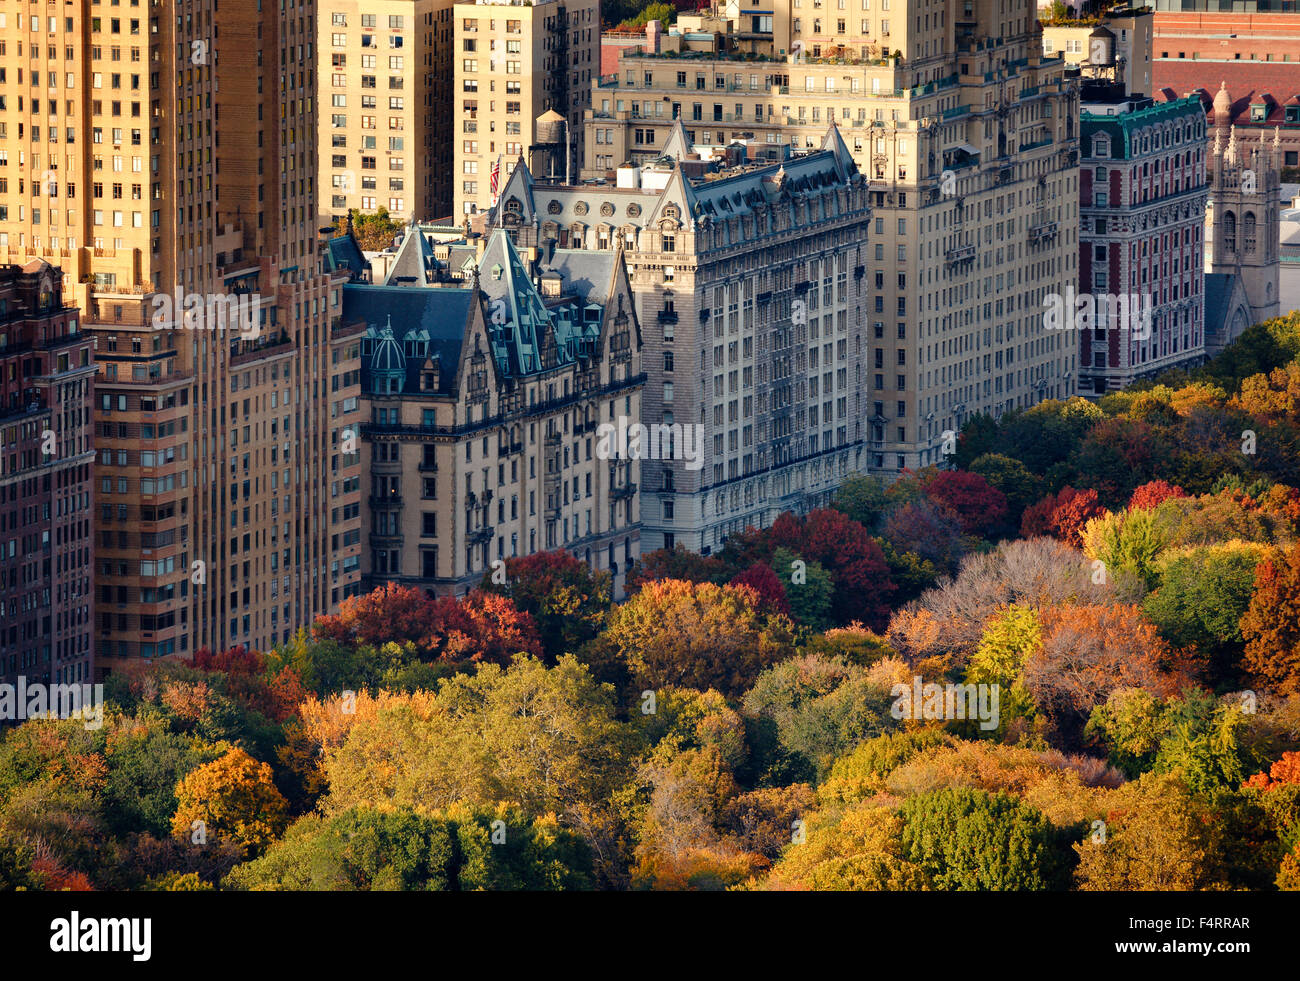 Aerial view of Upper West Side buildings and Central Park in fall, Manhattan, New York City - Stock Image